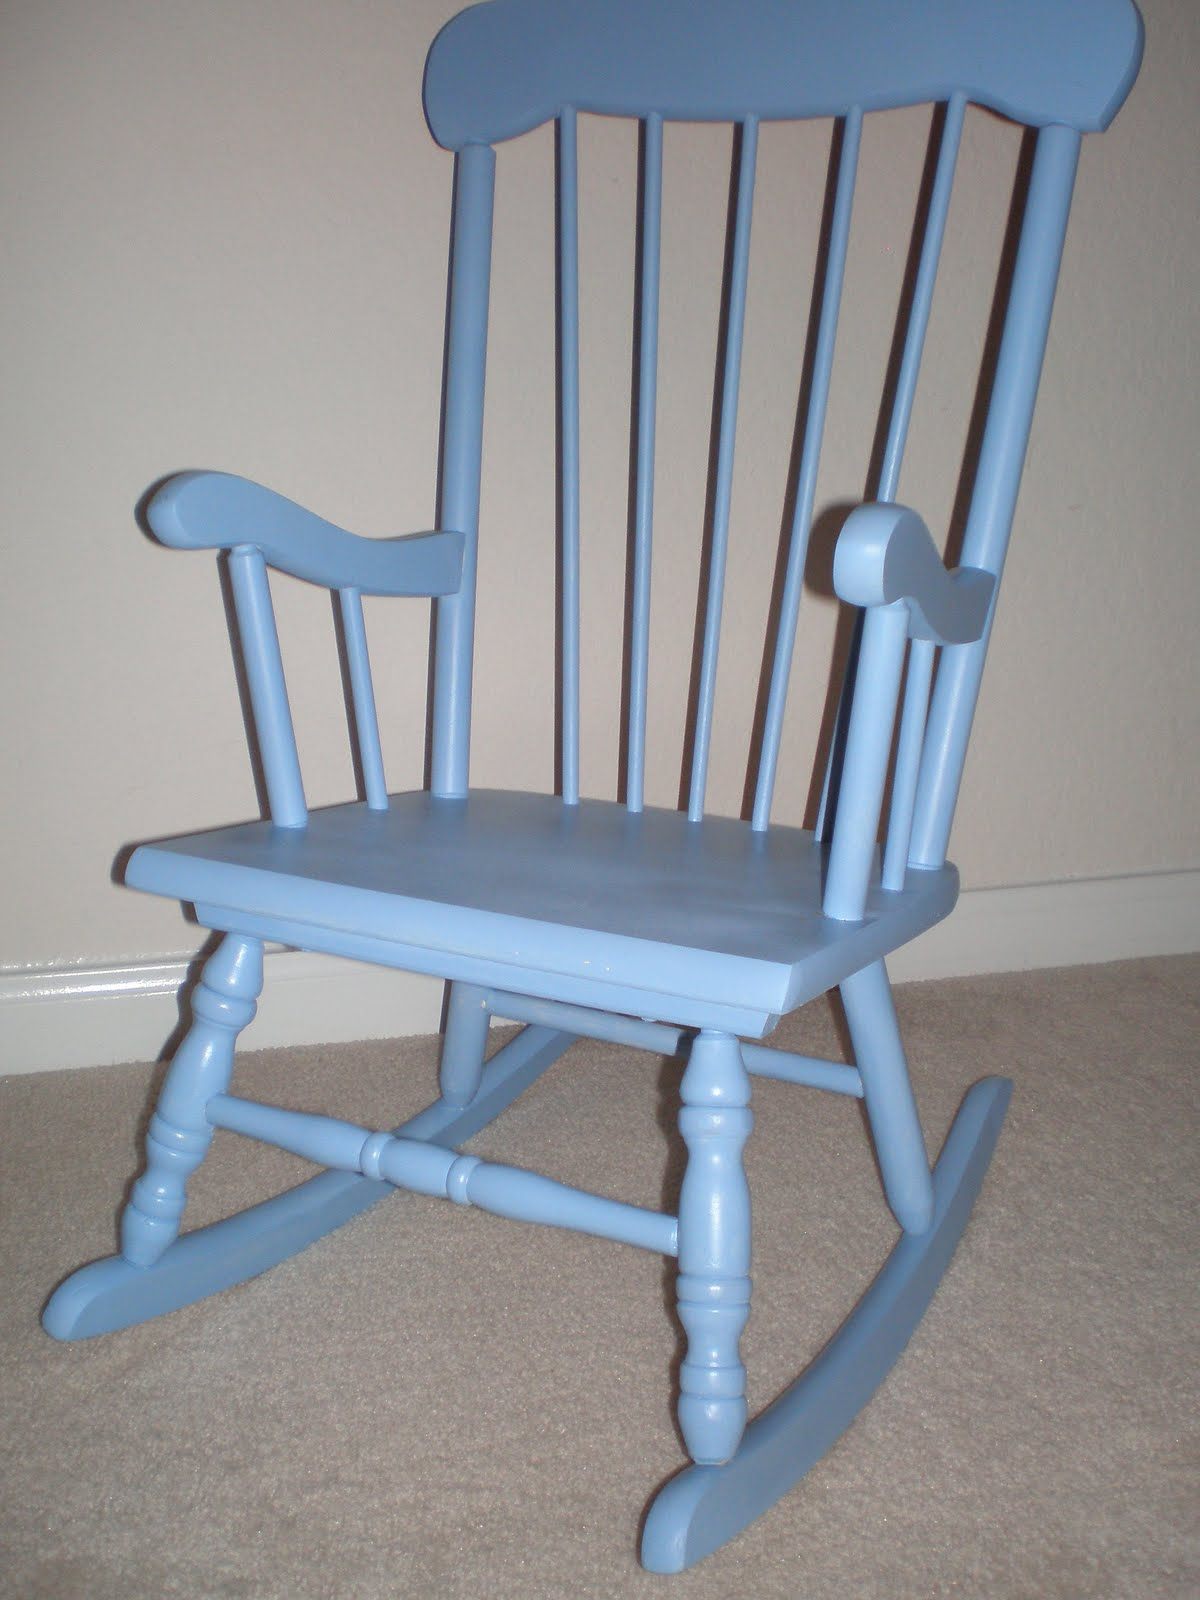 Rocking Chair Baby Home Depot Lawn Chairs Brown Turquoise Diy